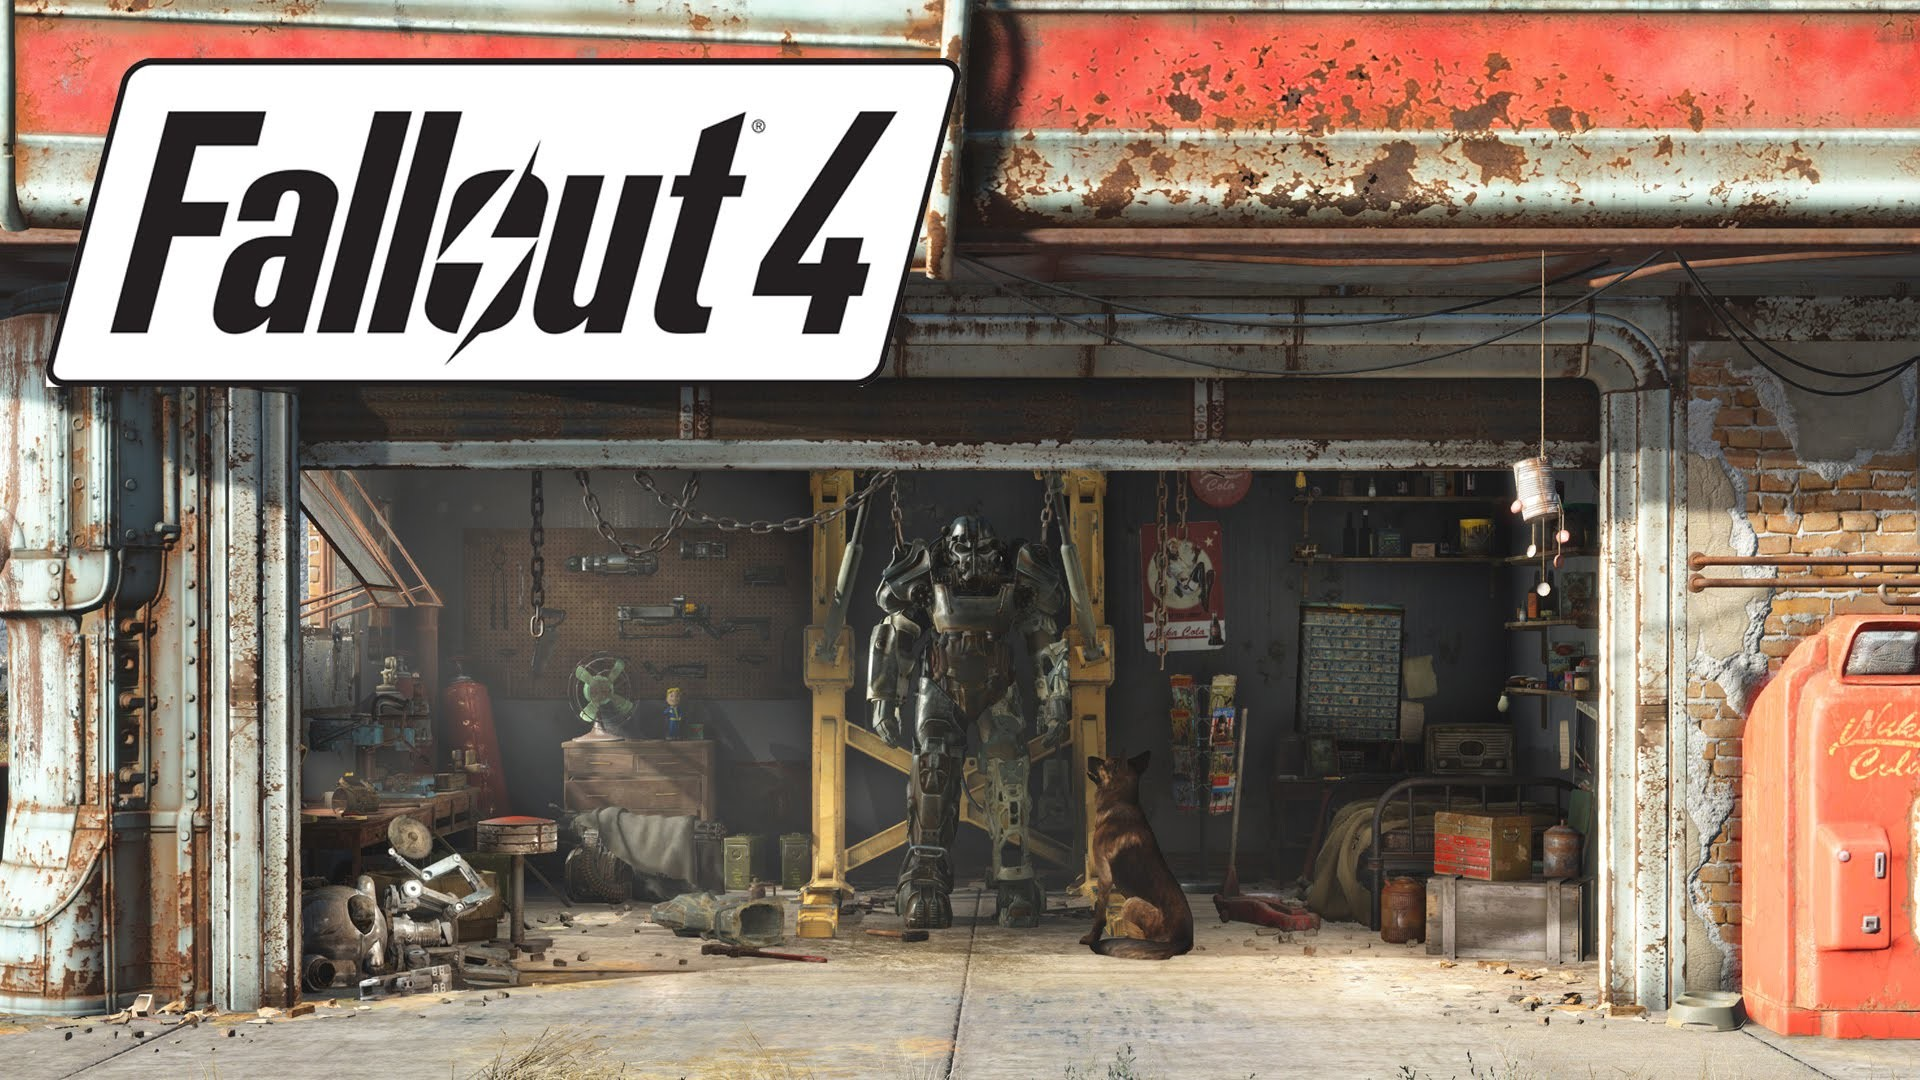 1920x1080 Fallout 4 Wallpaper 1920×1080 Fallout 4 Wallpaper Android